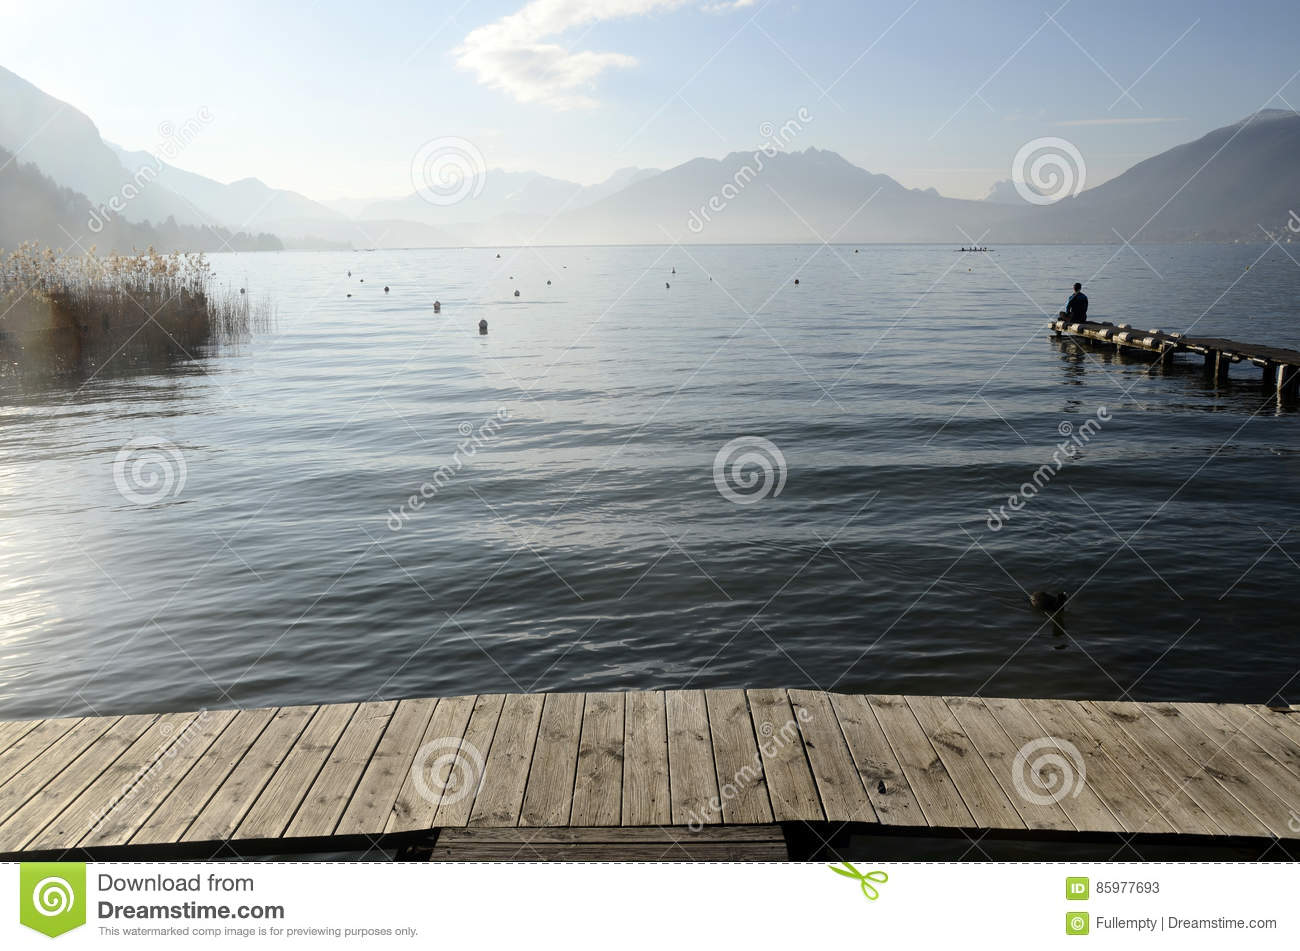 Lake Annecy clipart #4, Download drawings